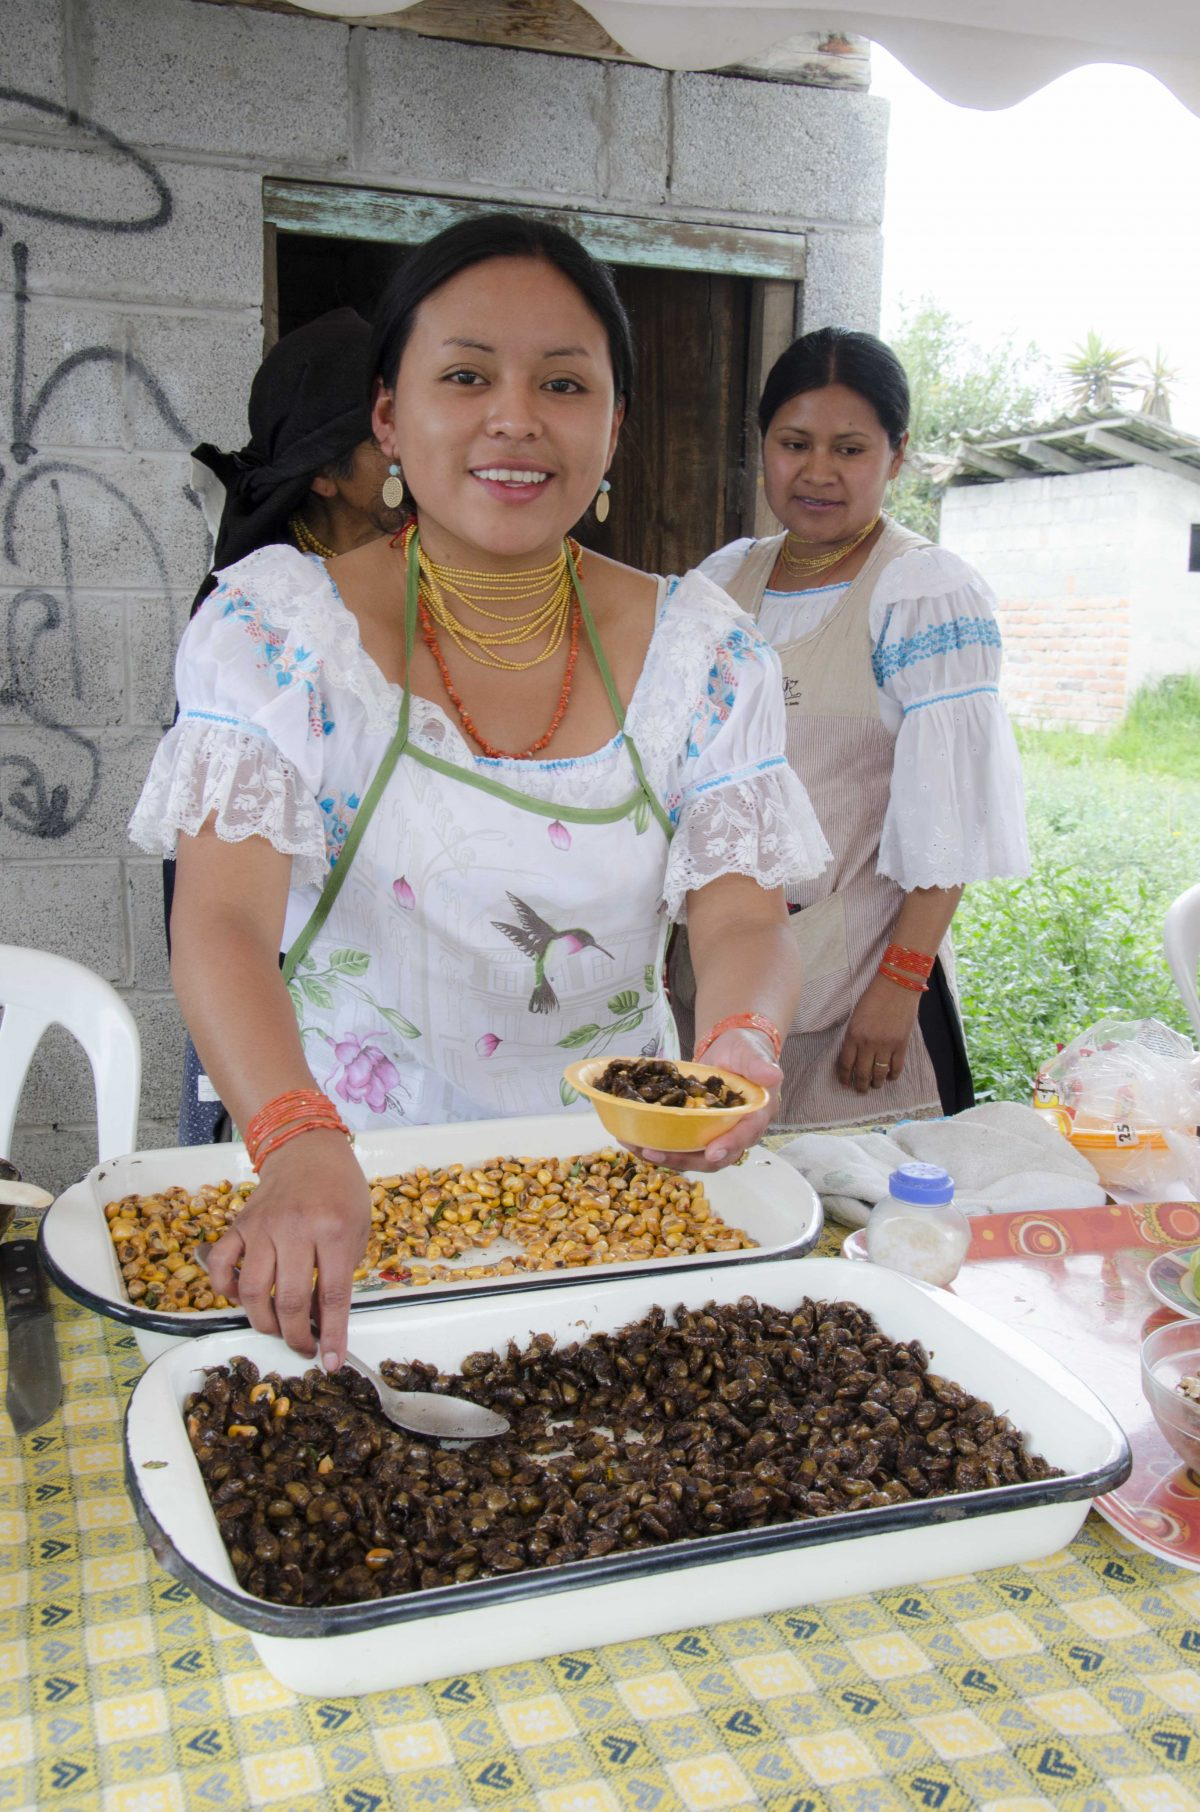 Catzos, or beetles, served in Peguche, Ecuador| ©Angela Drake